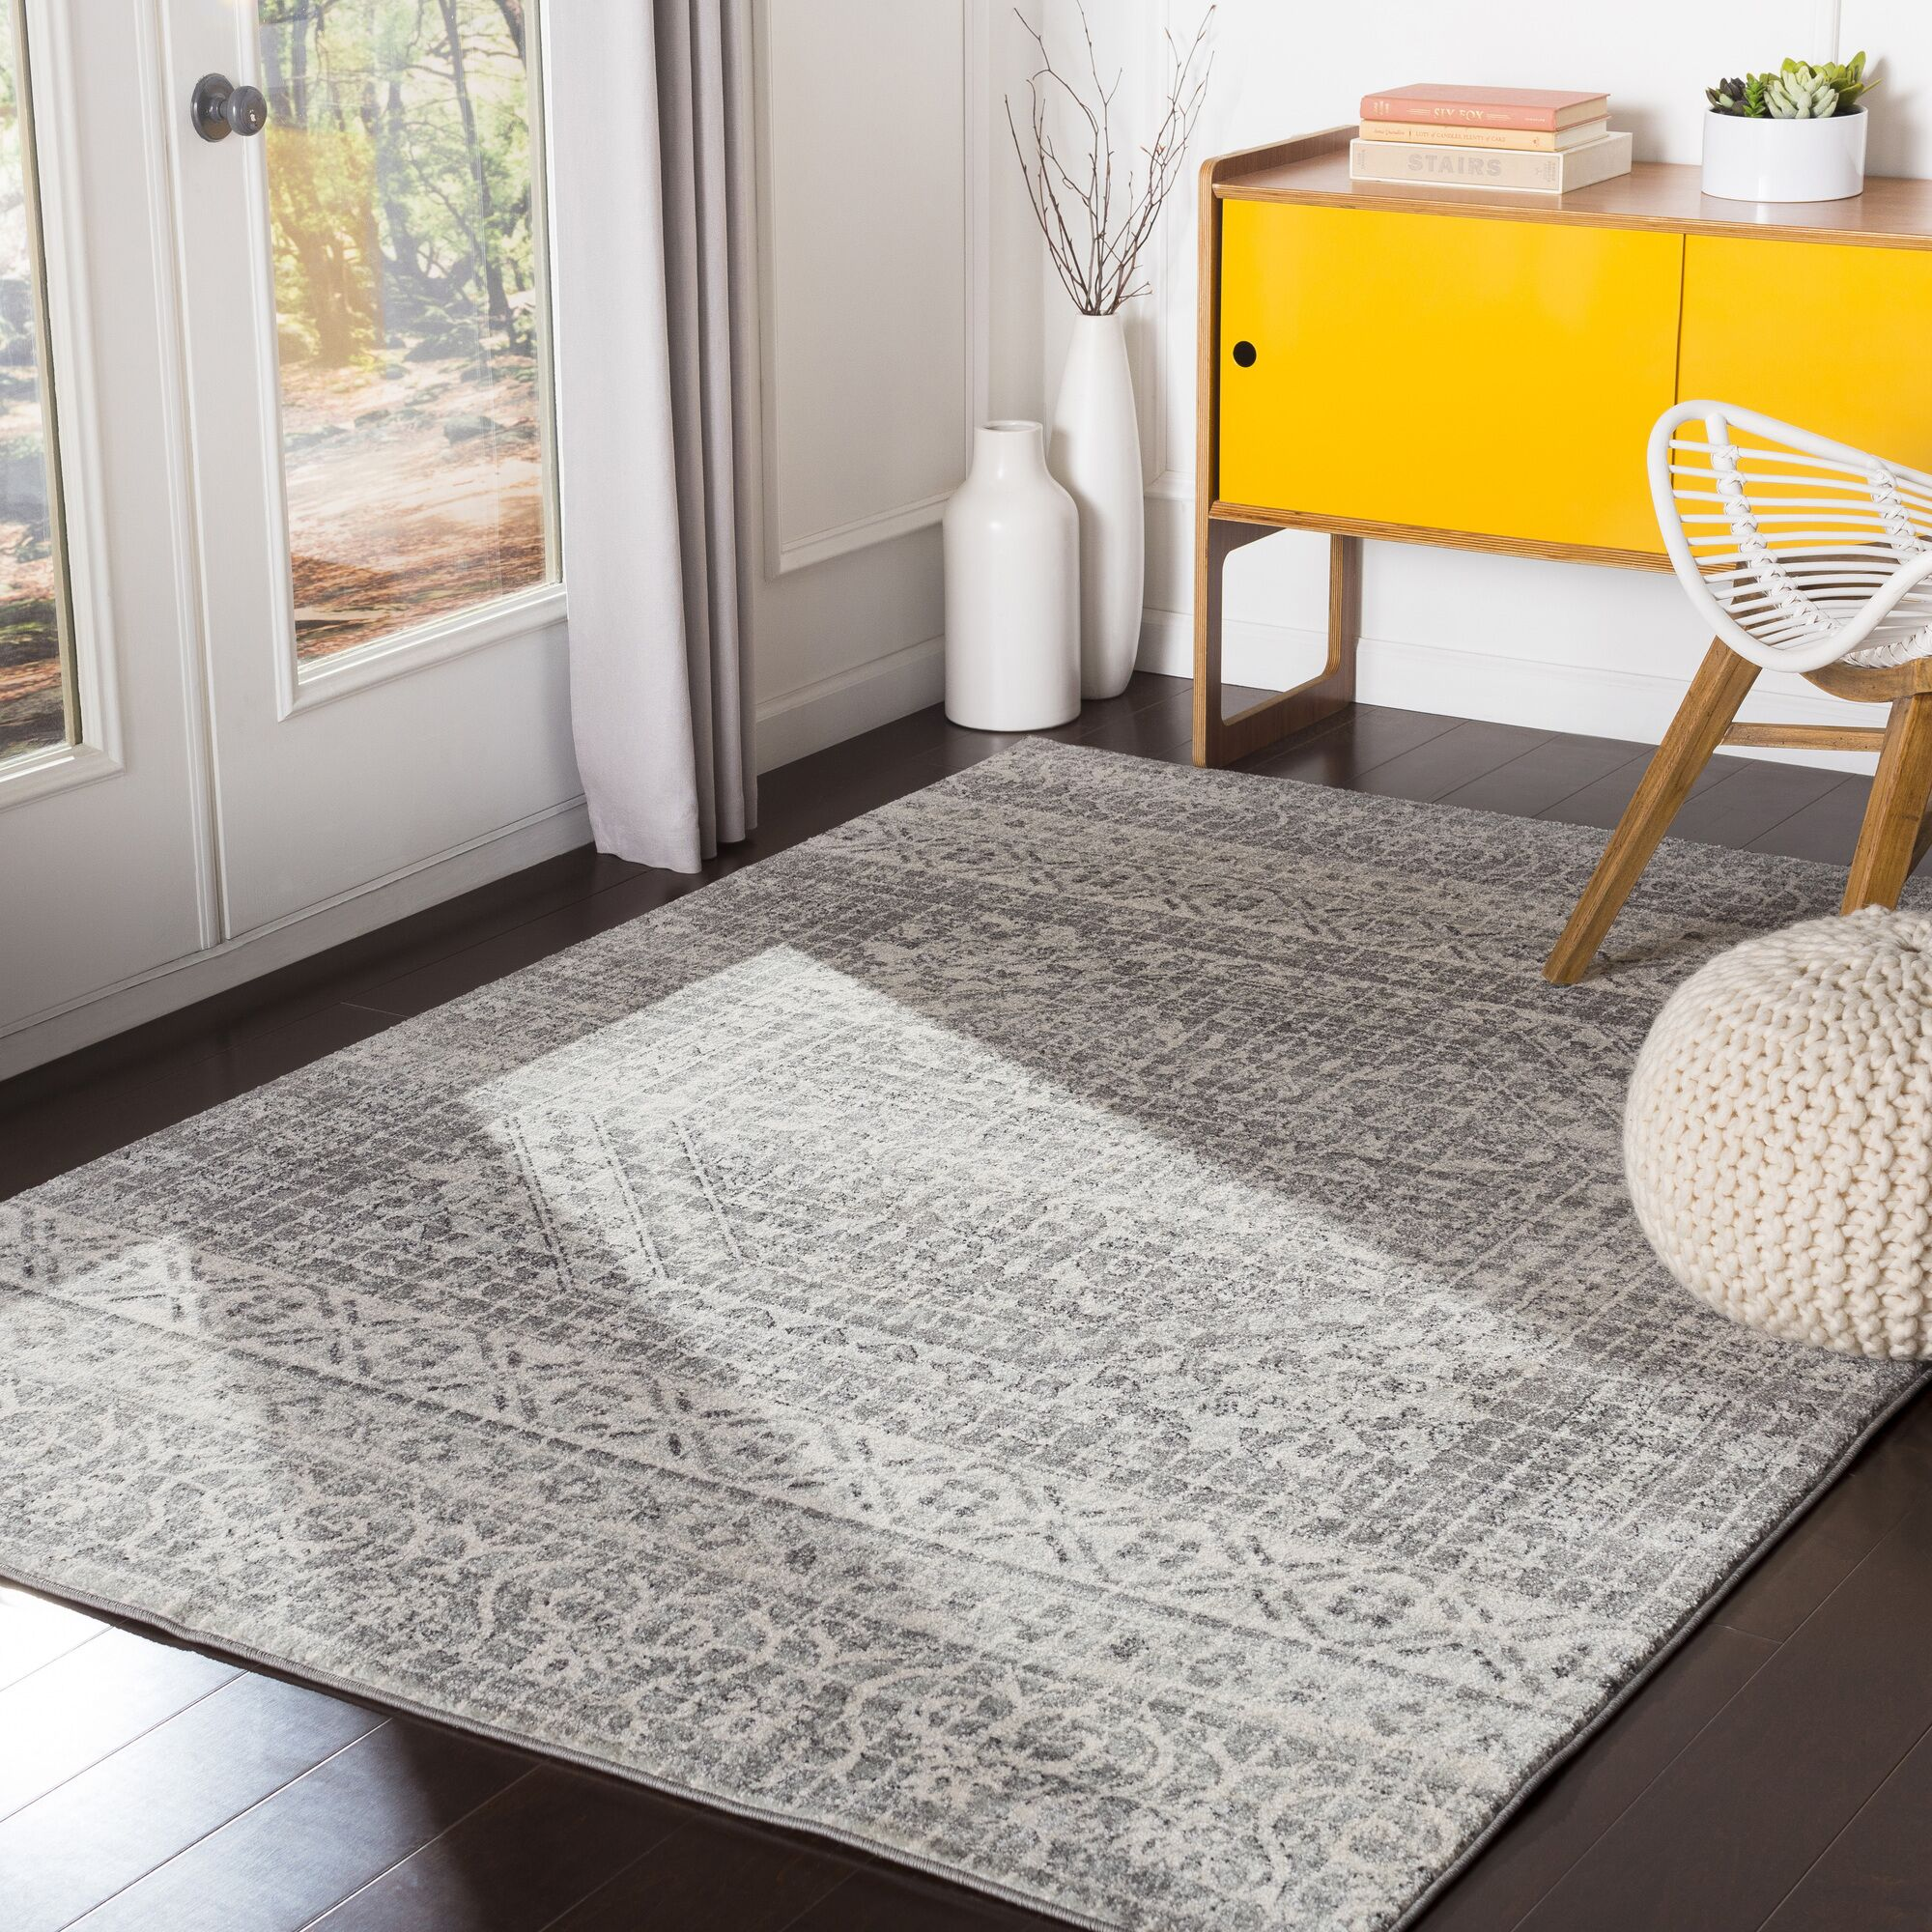 Hillsby Inspired Floral Light Gray/Charcoal Area Rug Rug Size: Rectangle 7'10